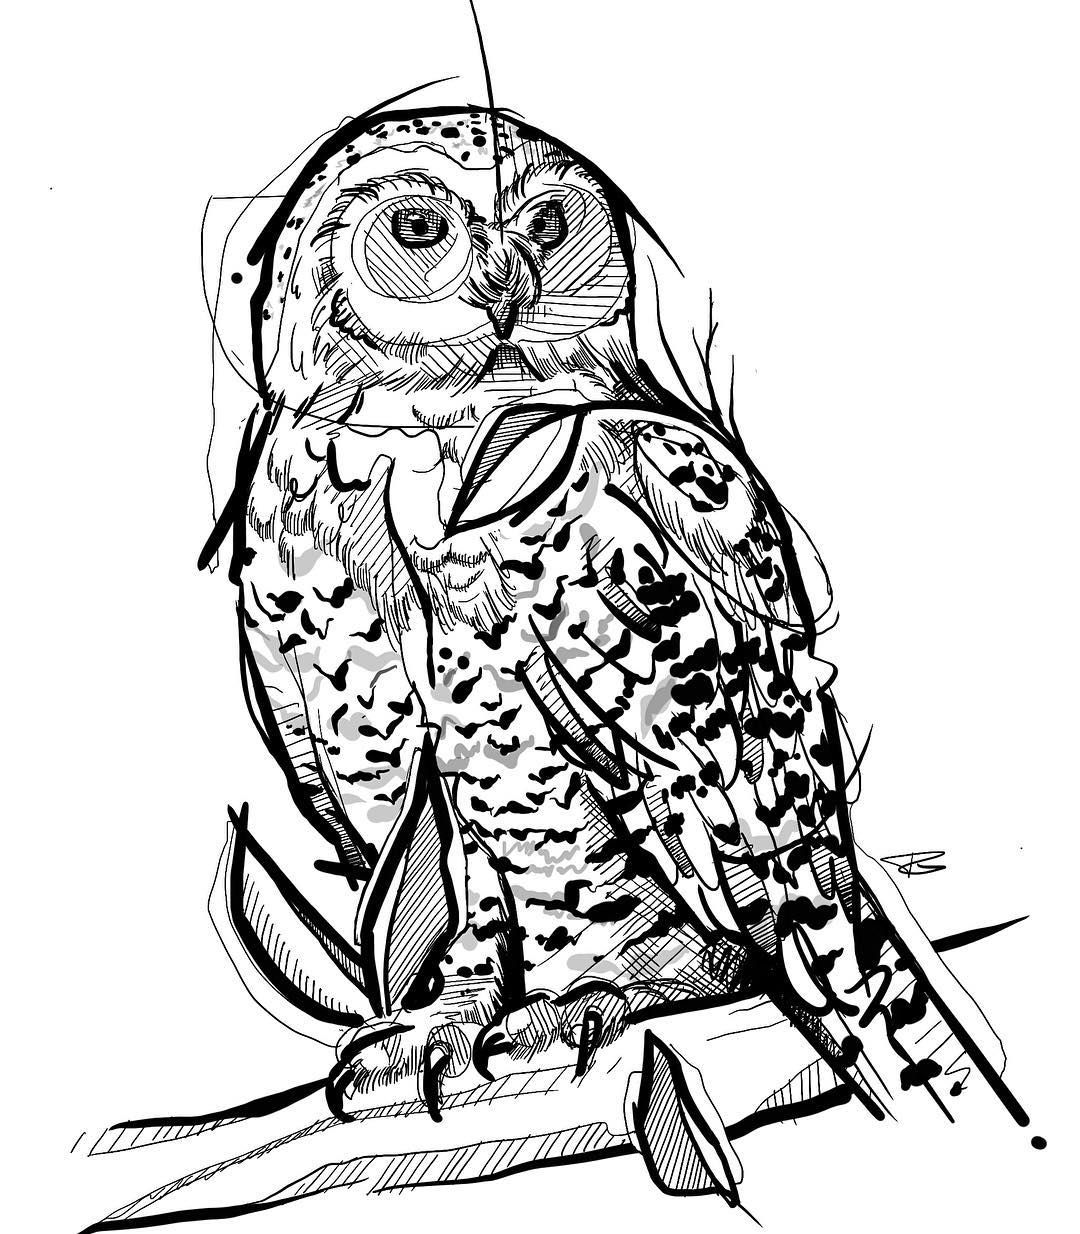 Pierre Gwod Tattoo Artist On Instagram Drew Up This Sketchy Snowyowl For Today Gonna Be A Fun One Tattoo Tattoos De Tattoo Artists Owl Tattoo Artist